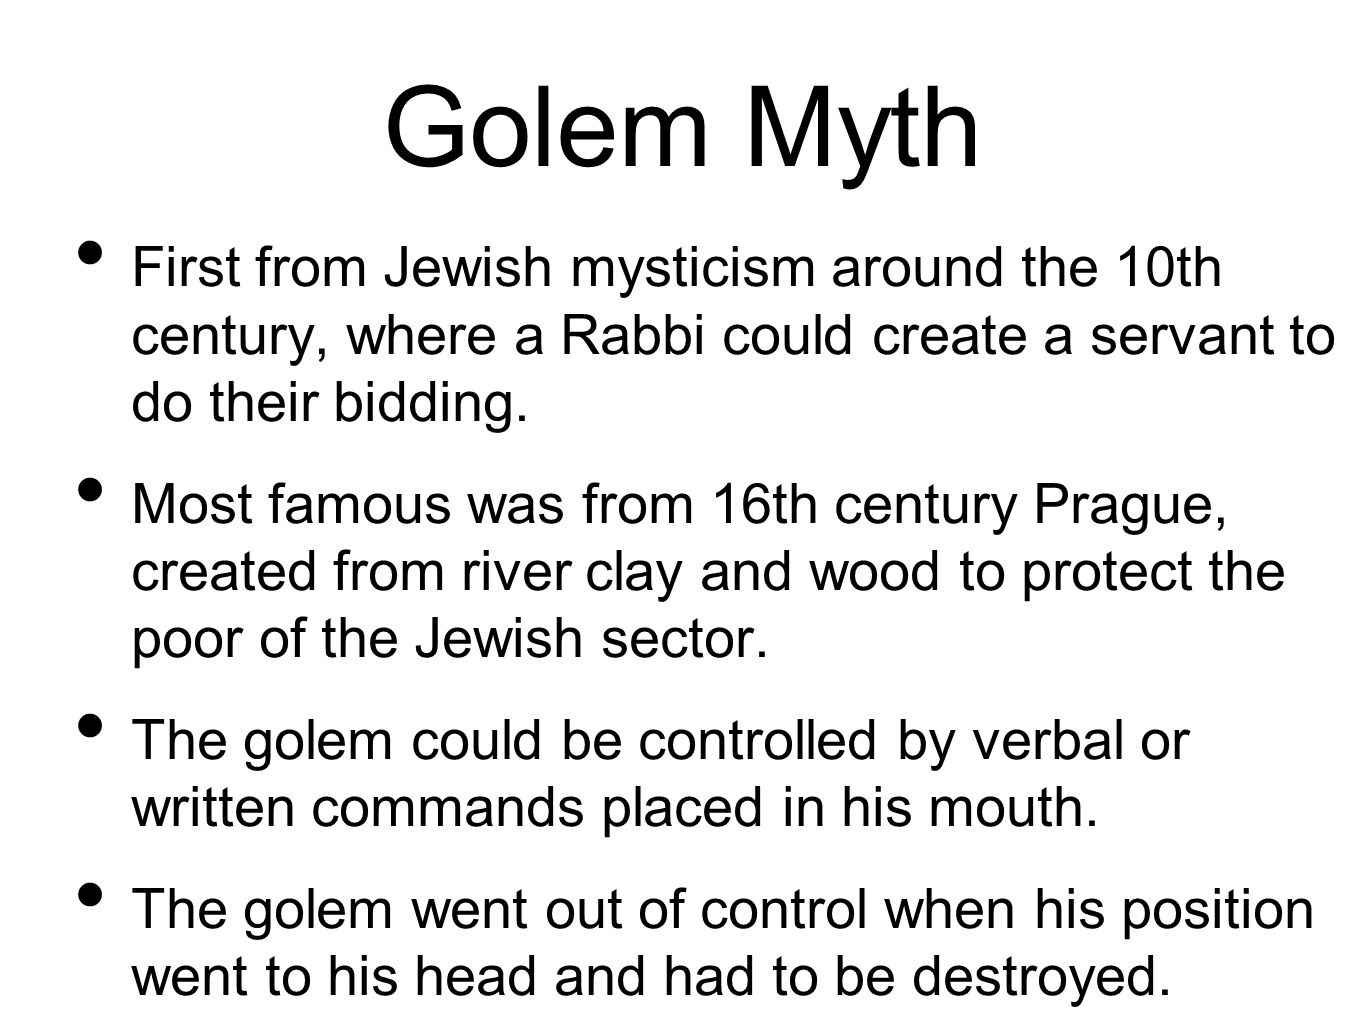 Golem Myth First from Jewish mysticism around the 10th century, where a Rabbi could create a servant to do their bidding.